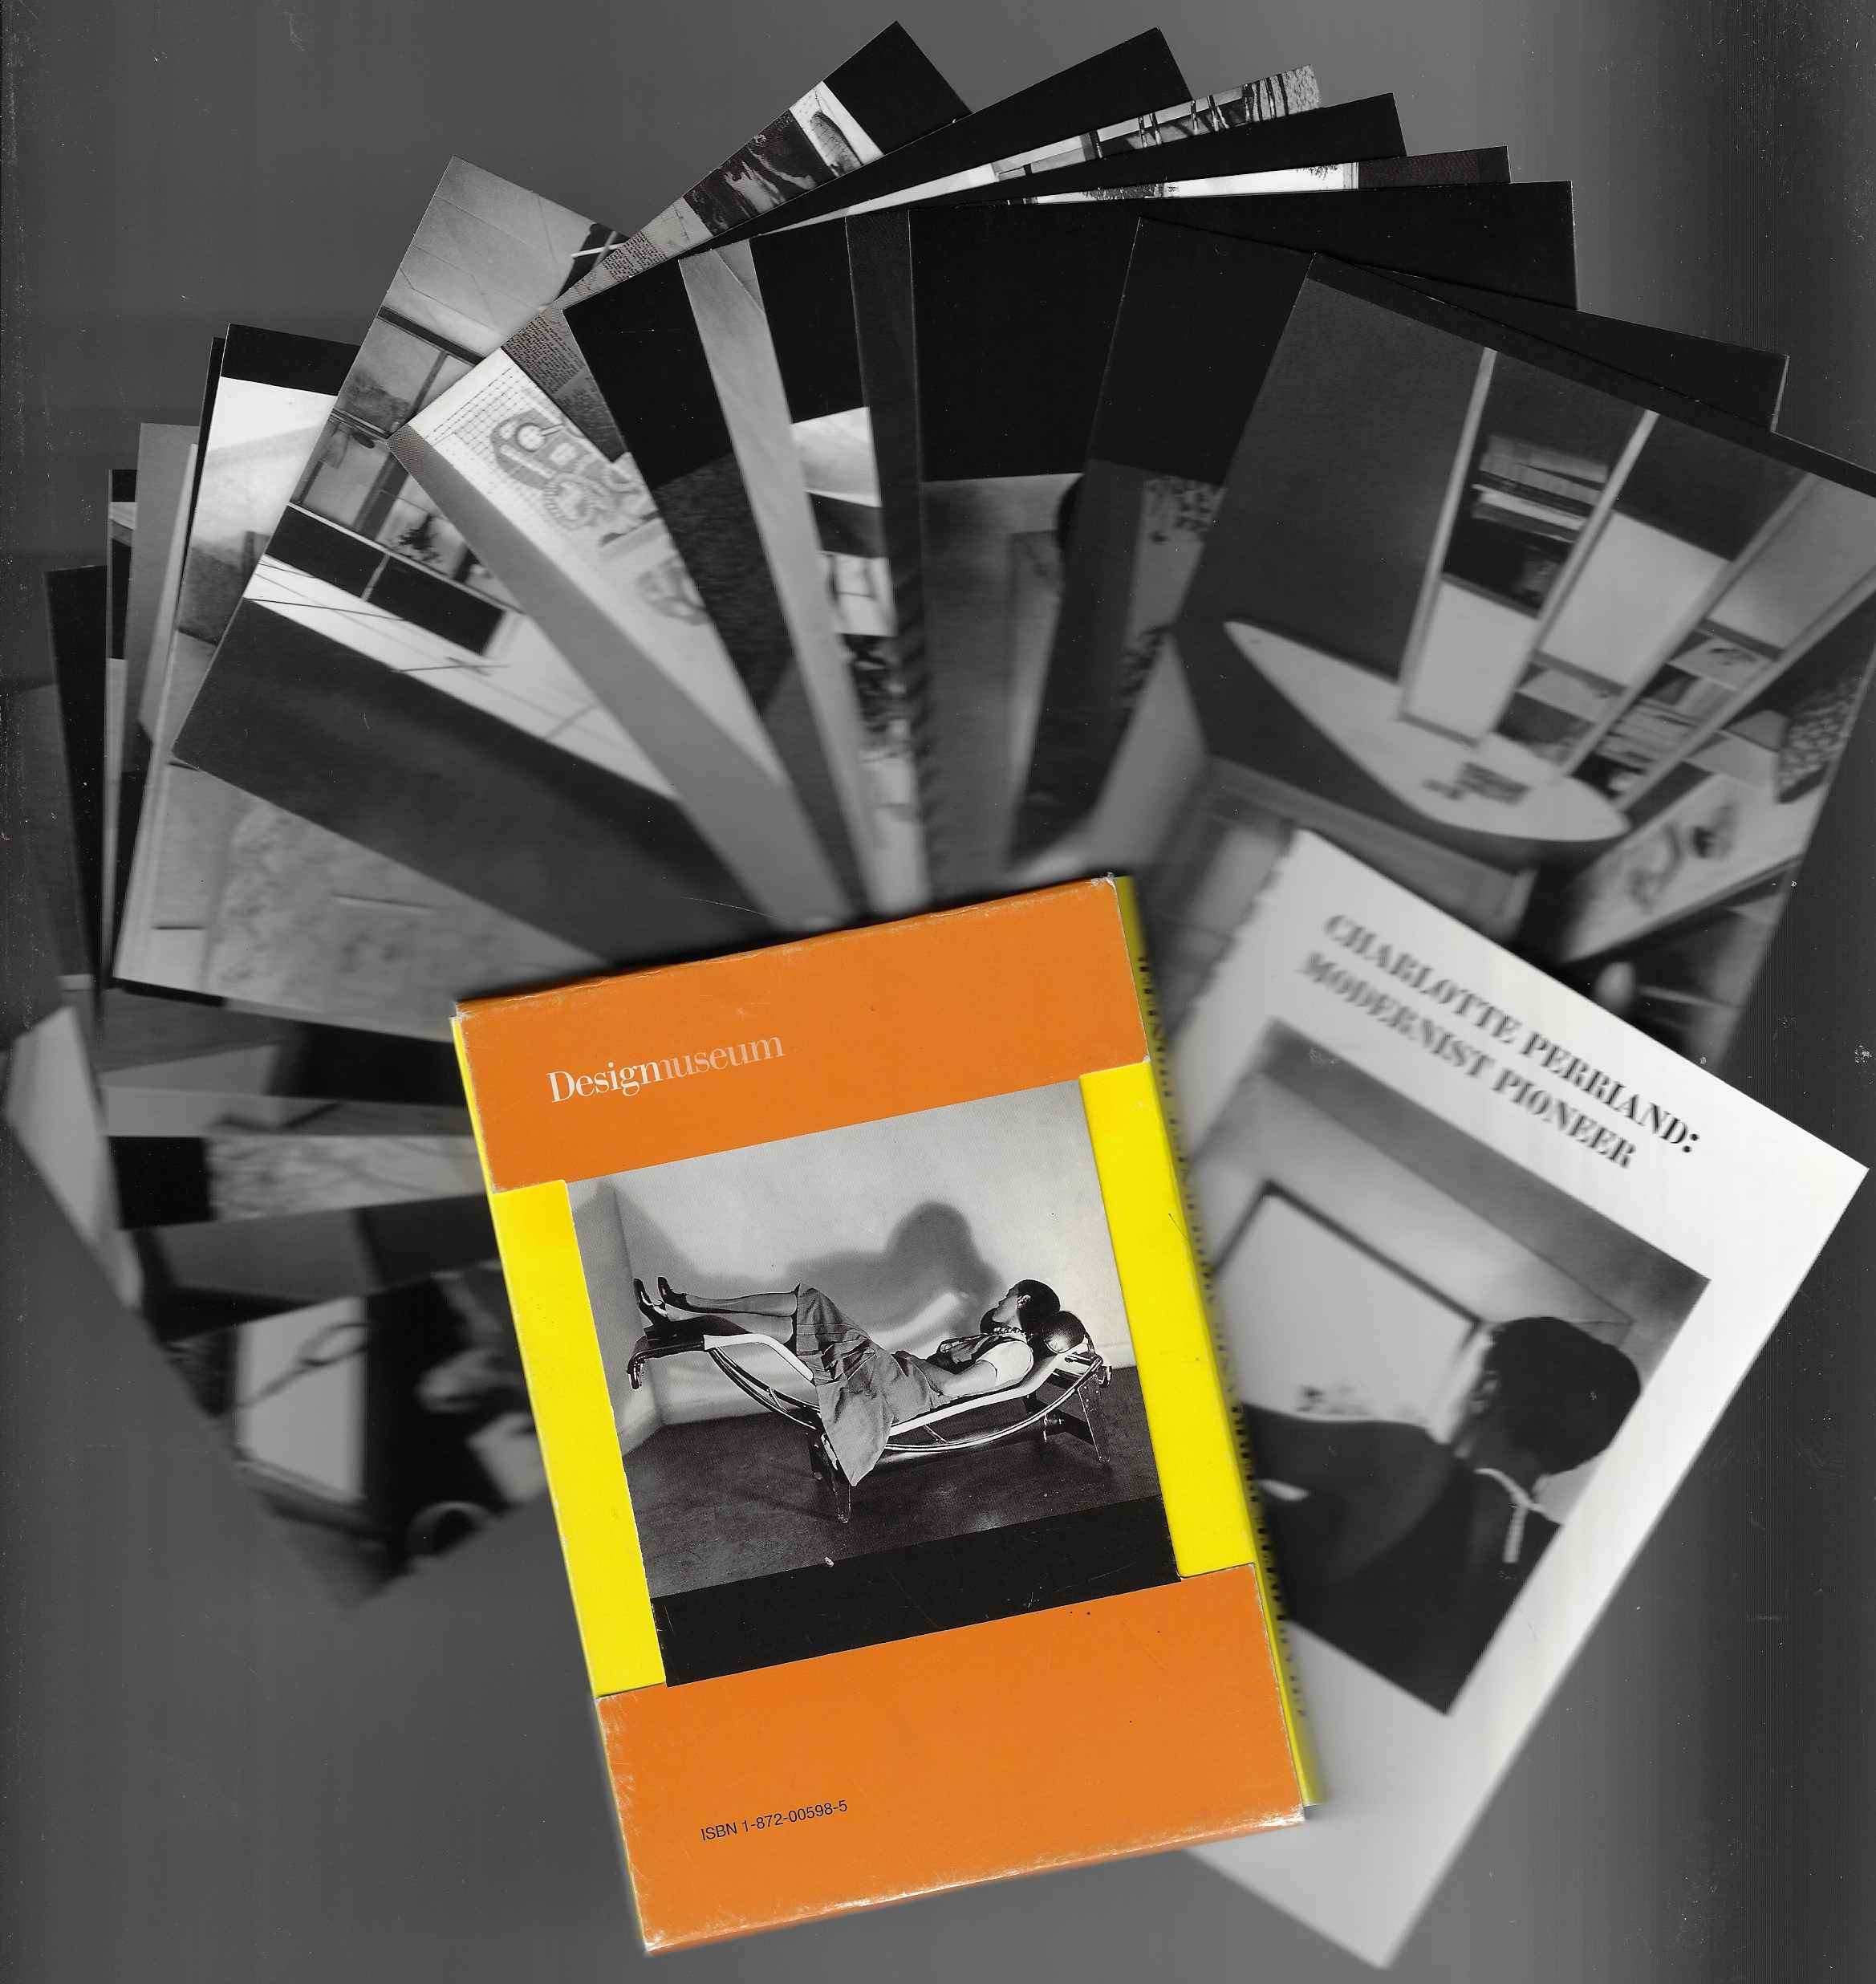 Image for Charlotte Perriand Modernist Pioneer - Design Museum postcard set accompanied by an essay in a pamphlet